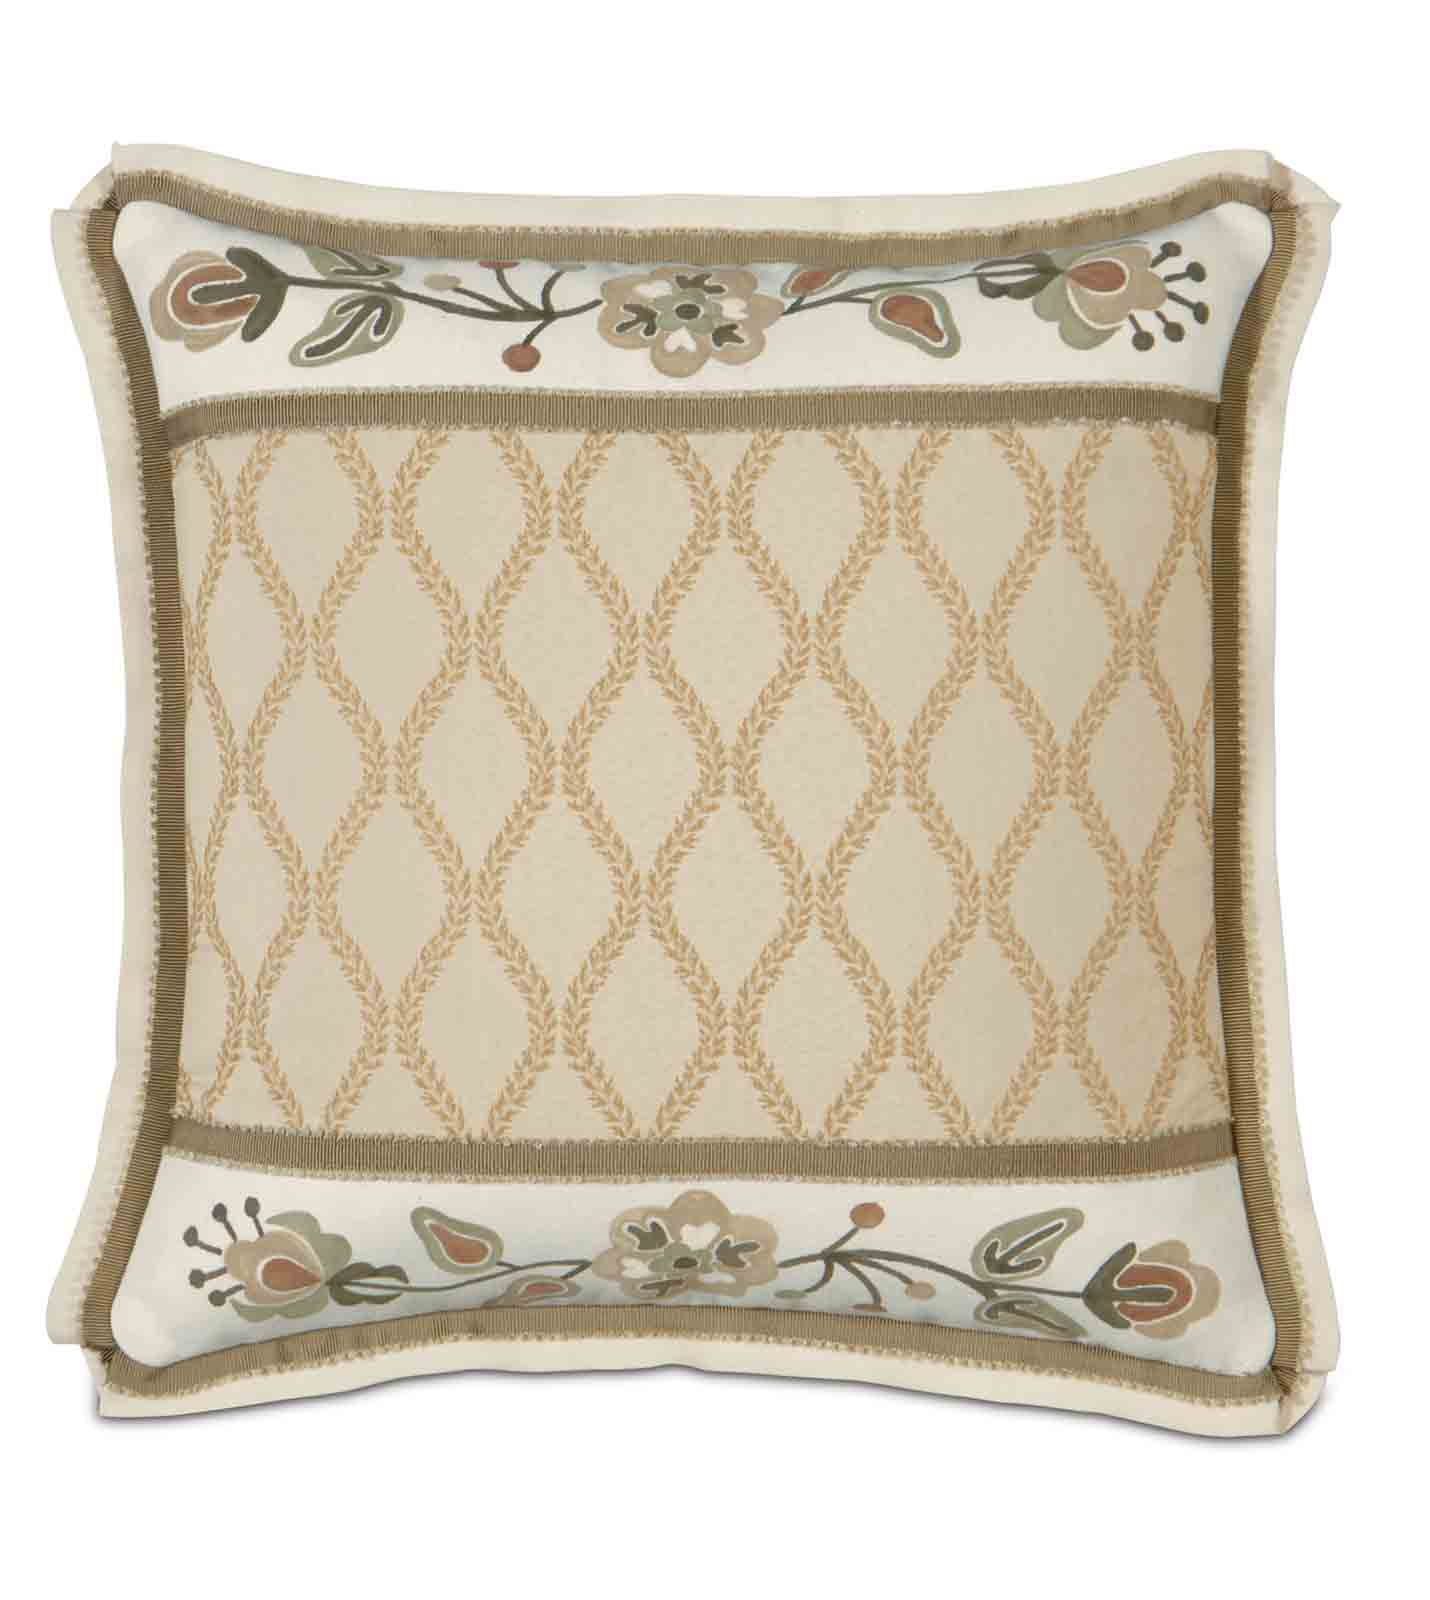 Luxury bedding by eastern accents griffin w hand painted for Hand painted pillows